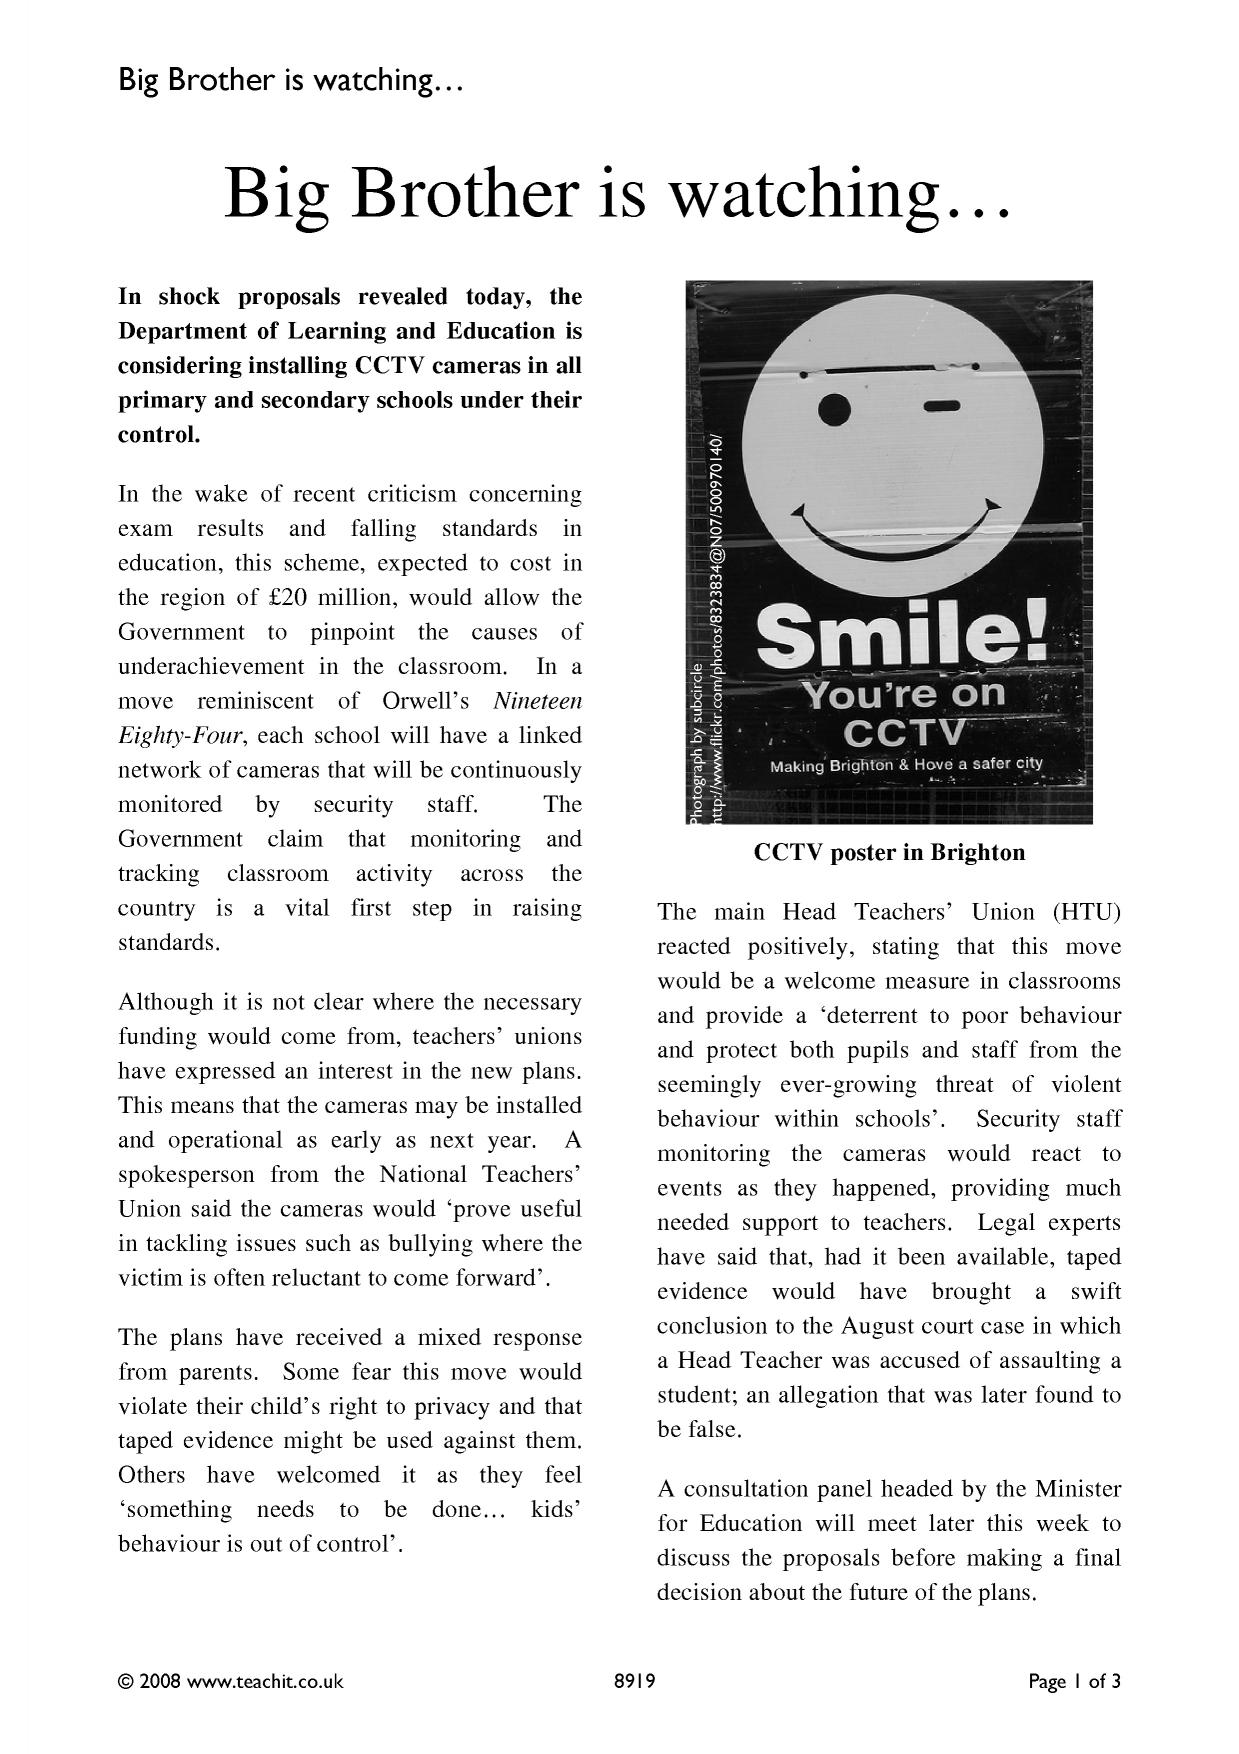 big brother persuasive writing newspaper article Have you ever wondered what a feature article is persuasive, or simply satisfy thanks for this article, this should help when writing news for the school paper.